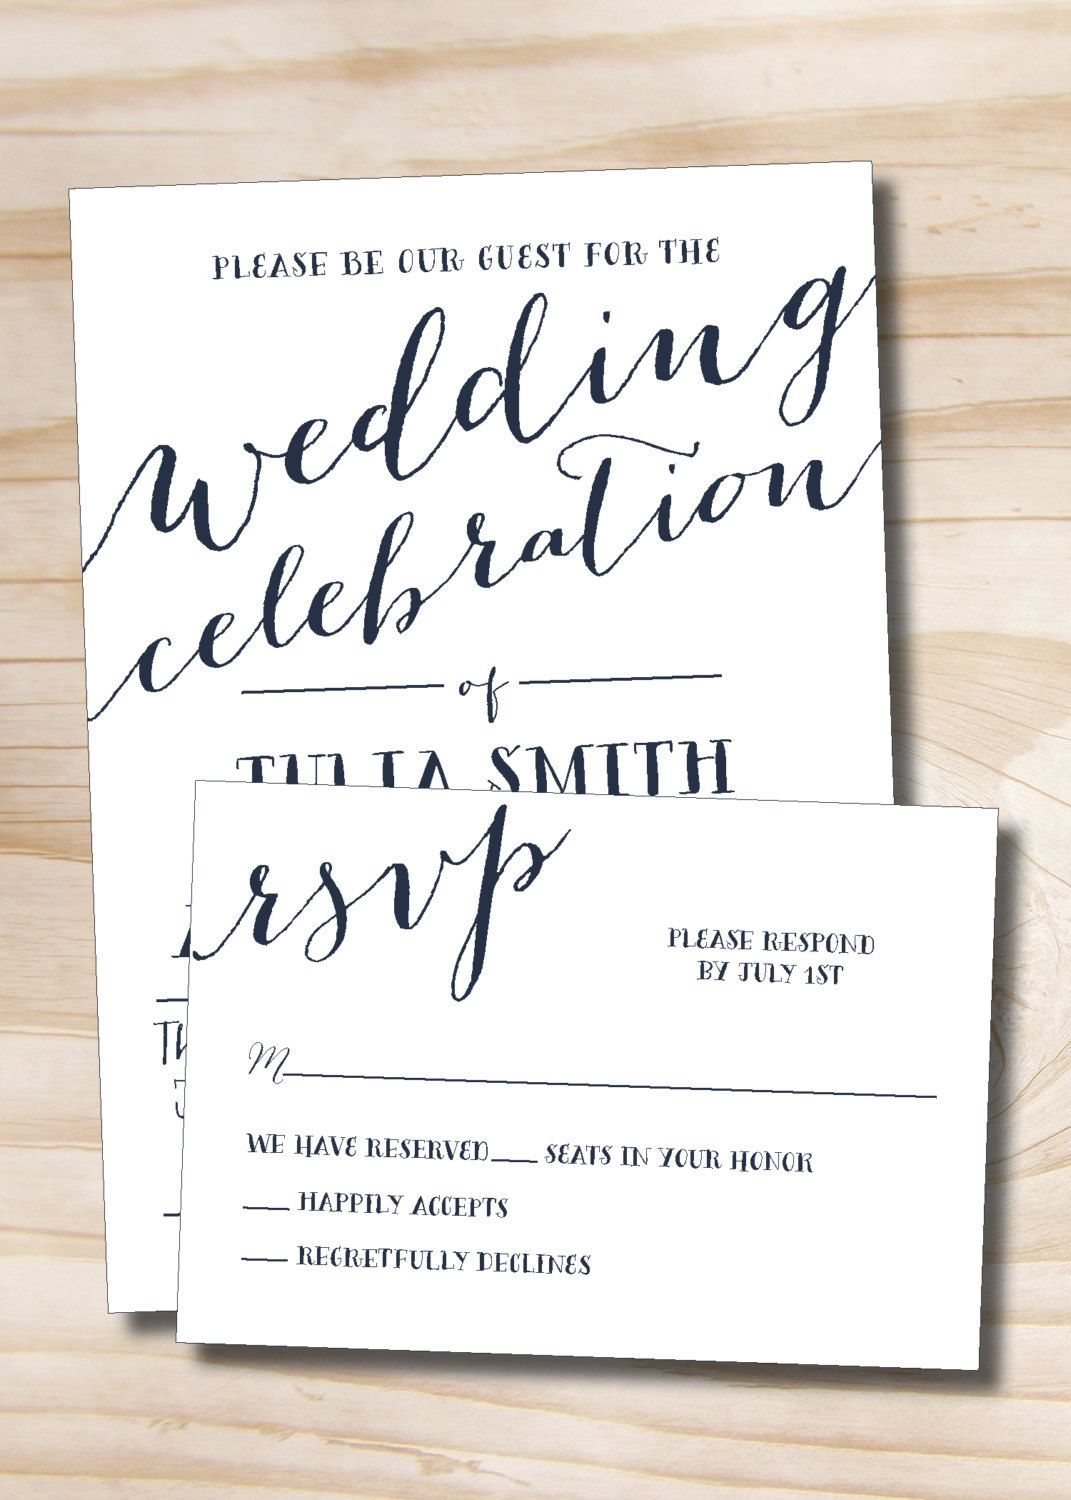 Rustic script celebrate wedding invitation response card 100 rustic script celebrate wedding invitation response card 100 professionally printed invitations response cards by stopboris Image collections